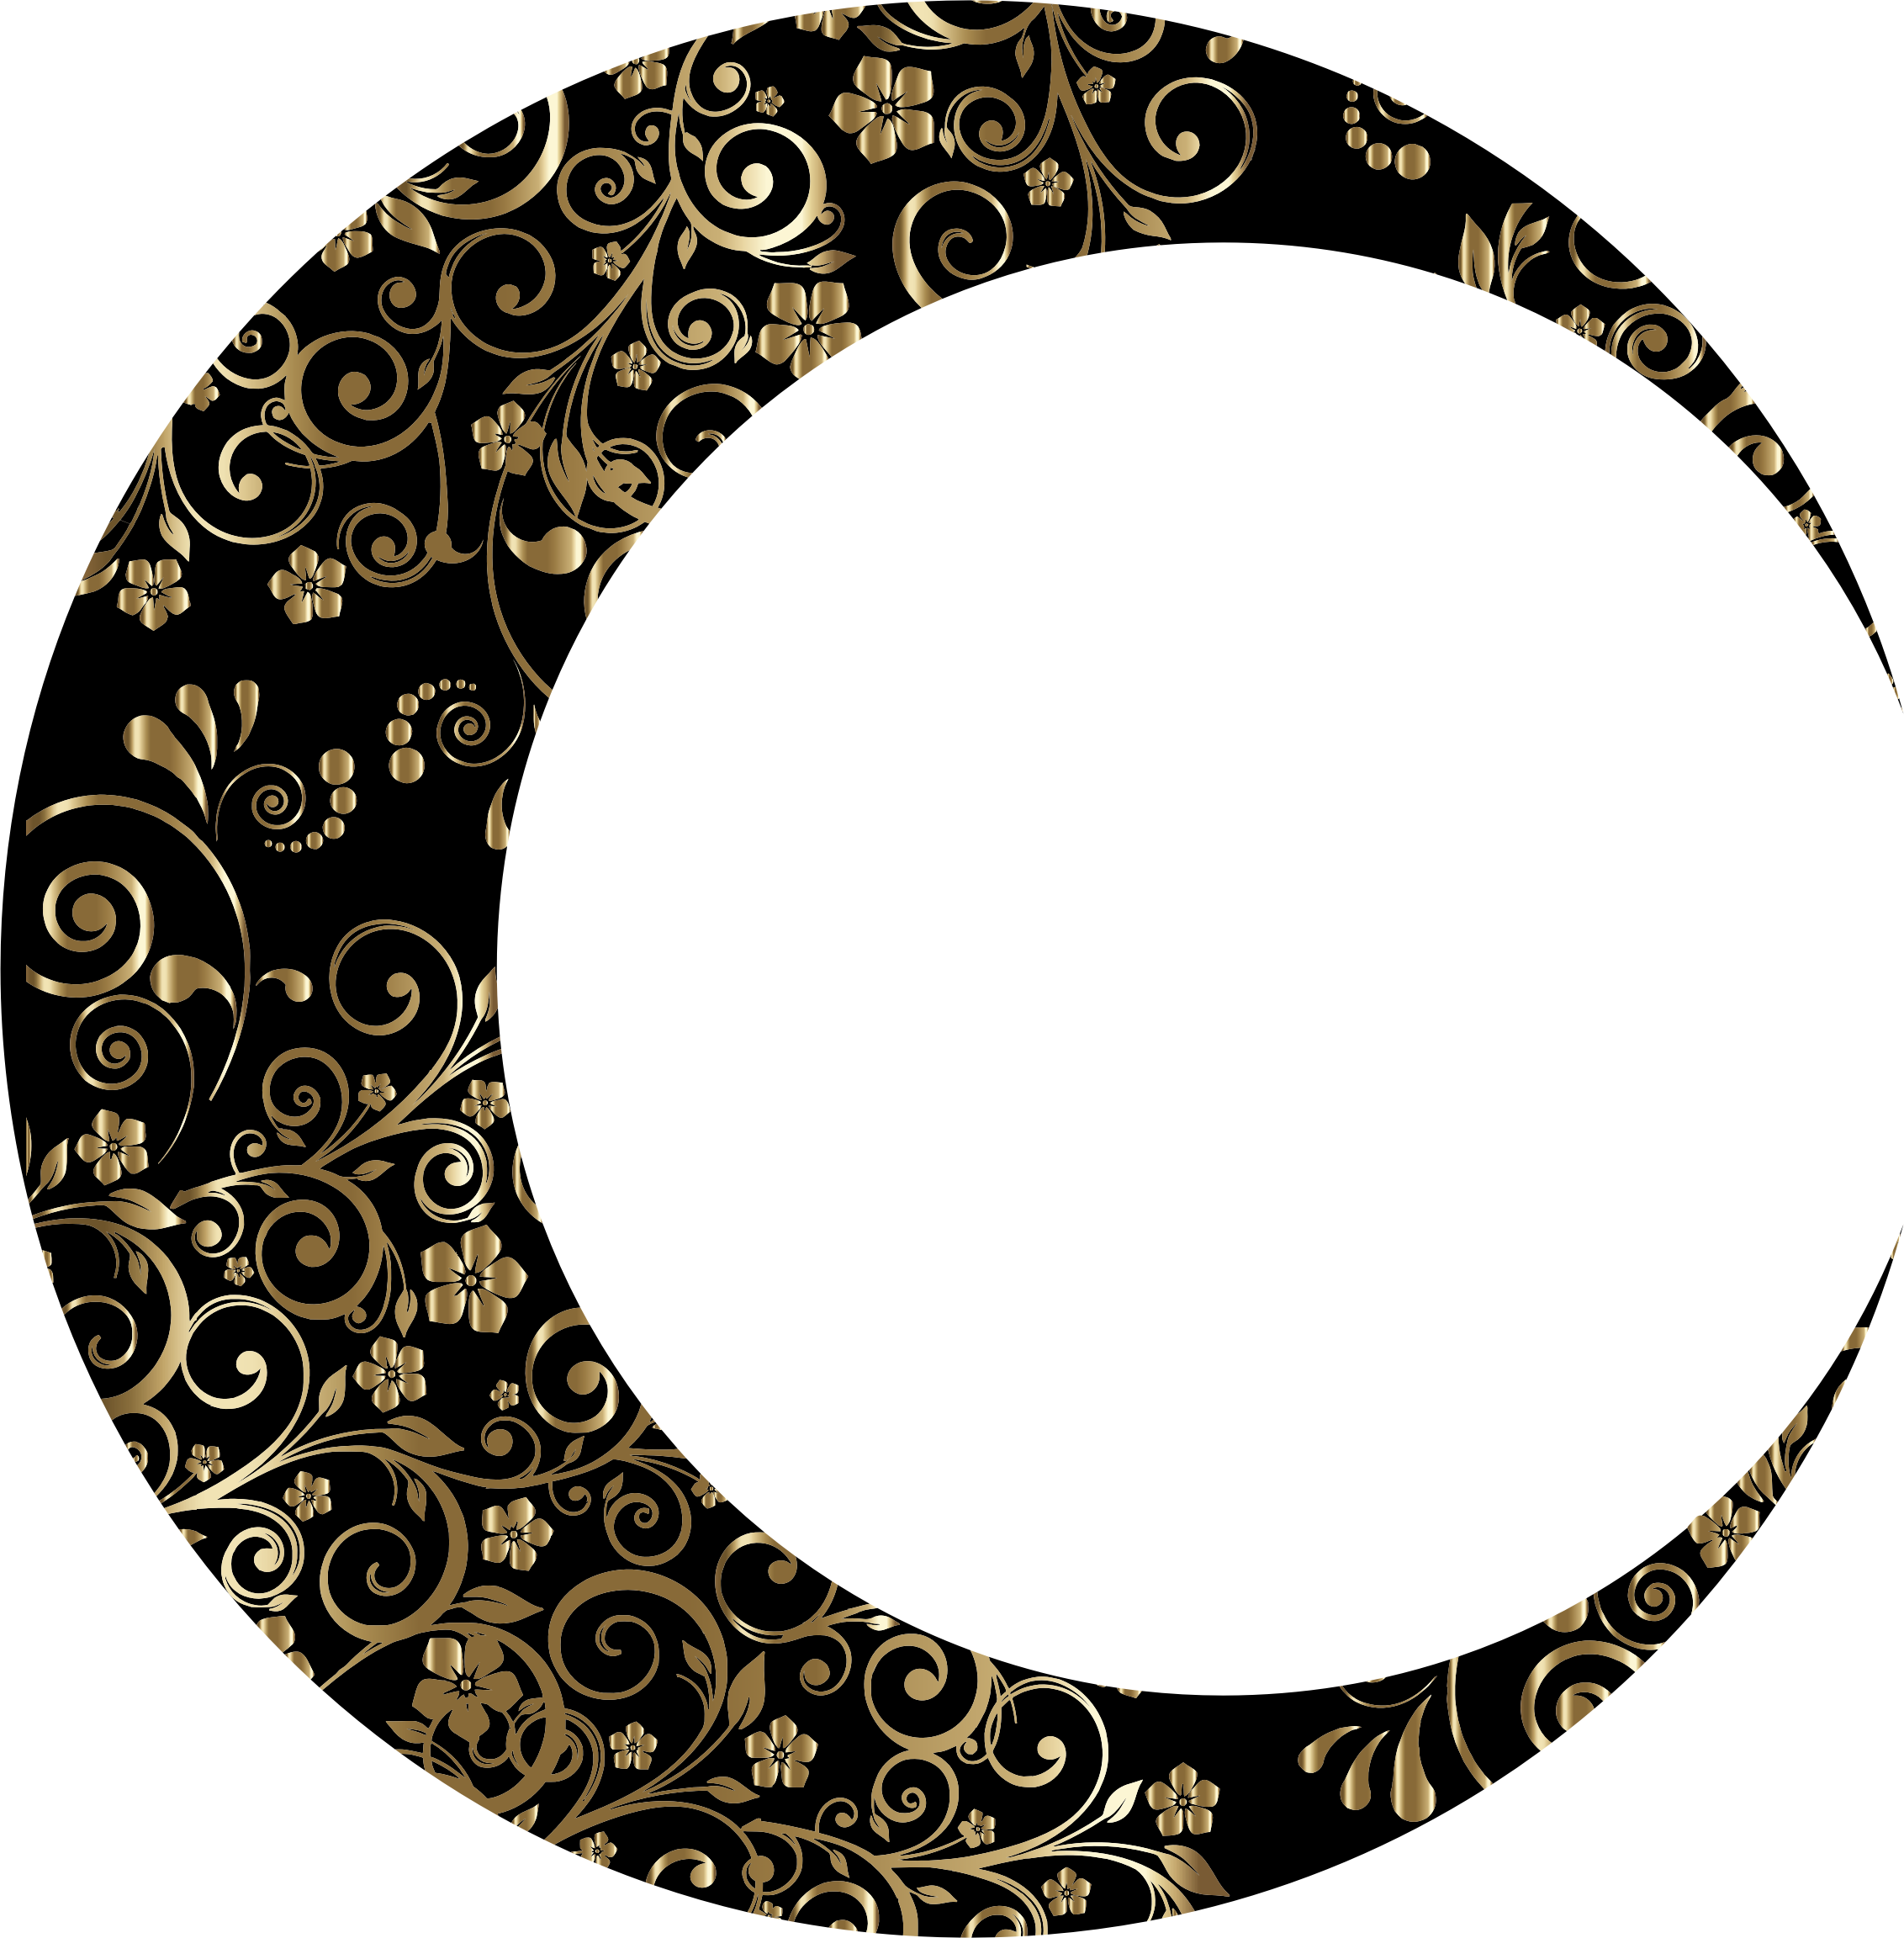 Gold Floral Crescent Moon Mark II 7 by GDJ